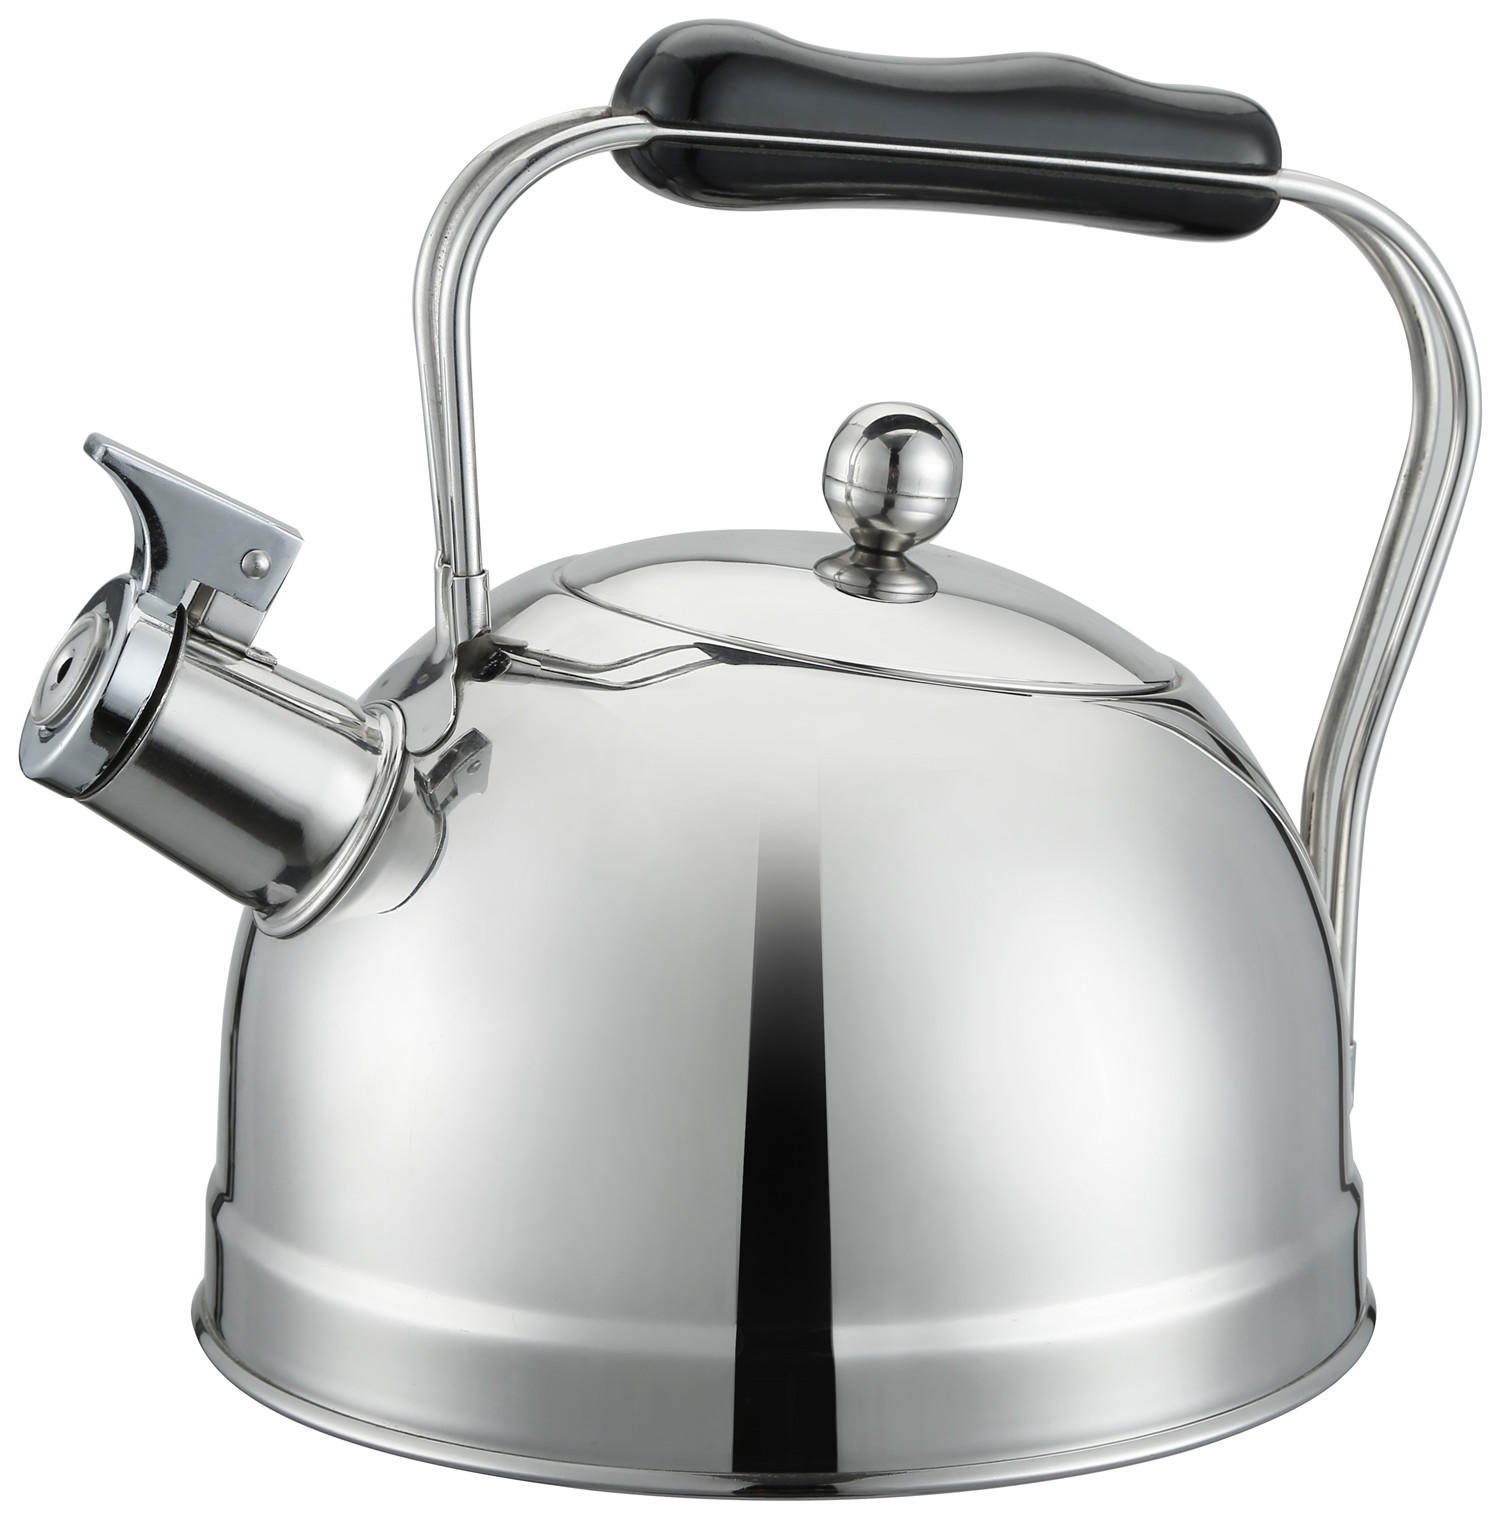 Stainless steel stove top whistling water kettle non electric